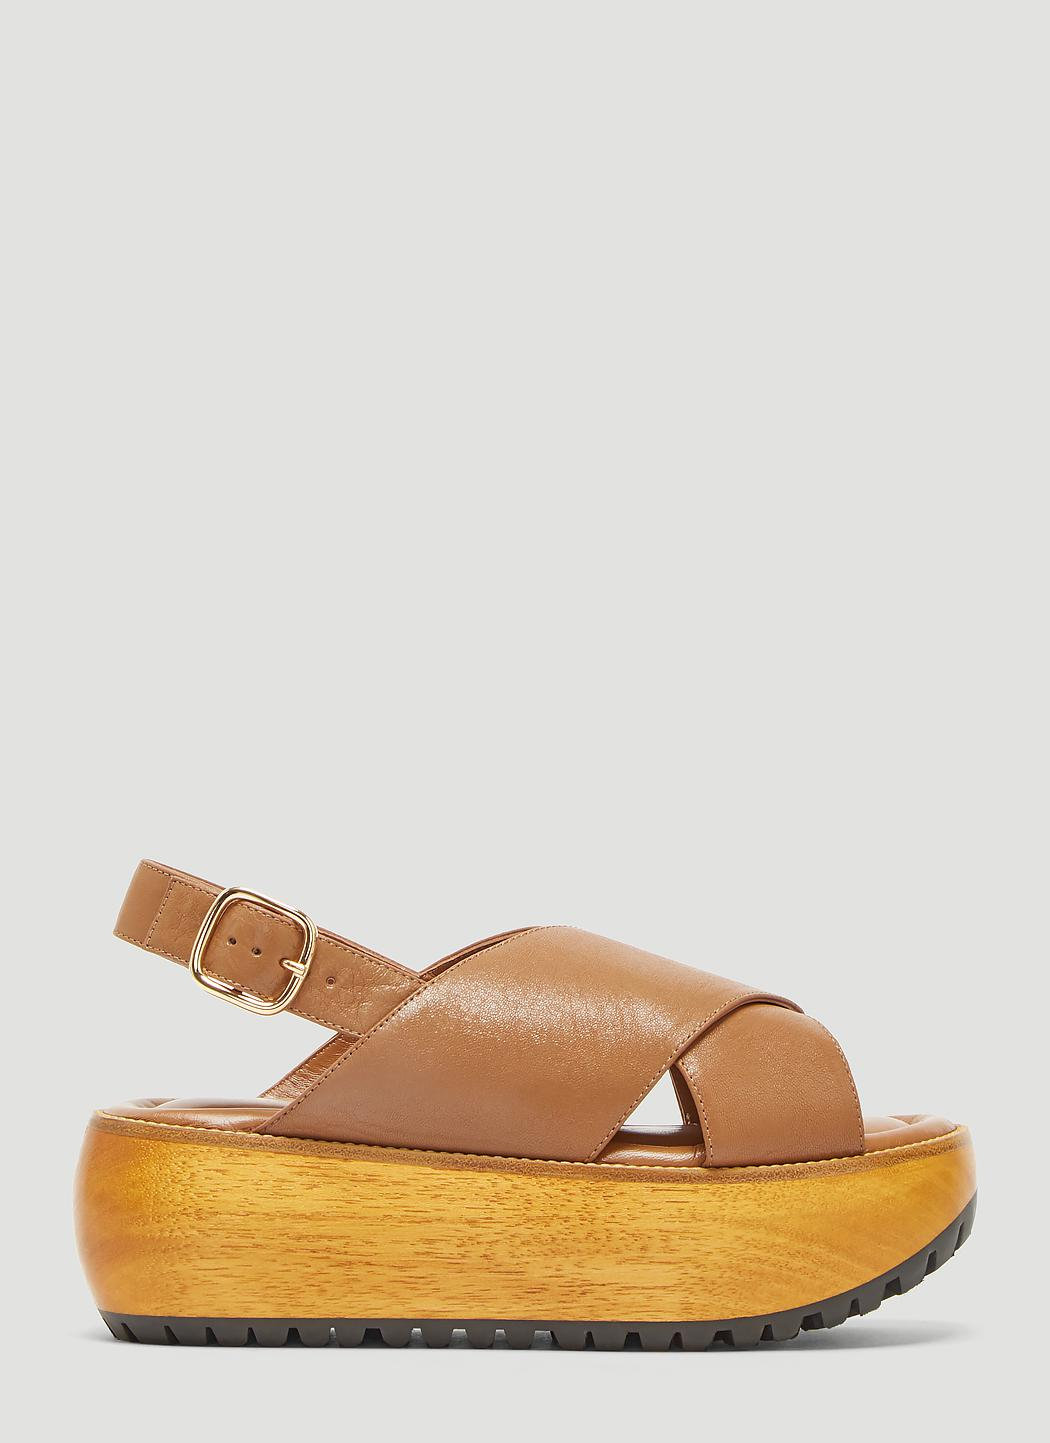 6442e1db5dc Marni Criss-cross Wedge Sandals In Brown in Brown - Lyst